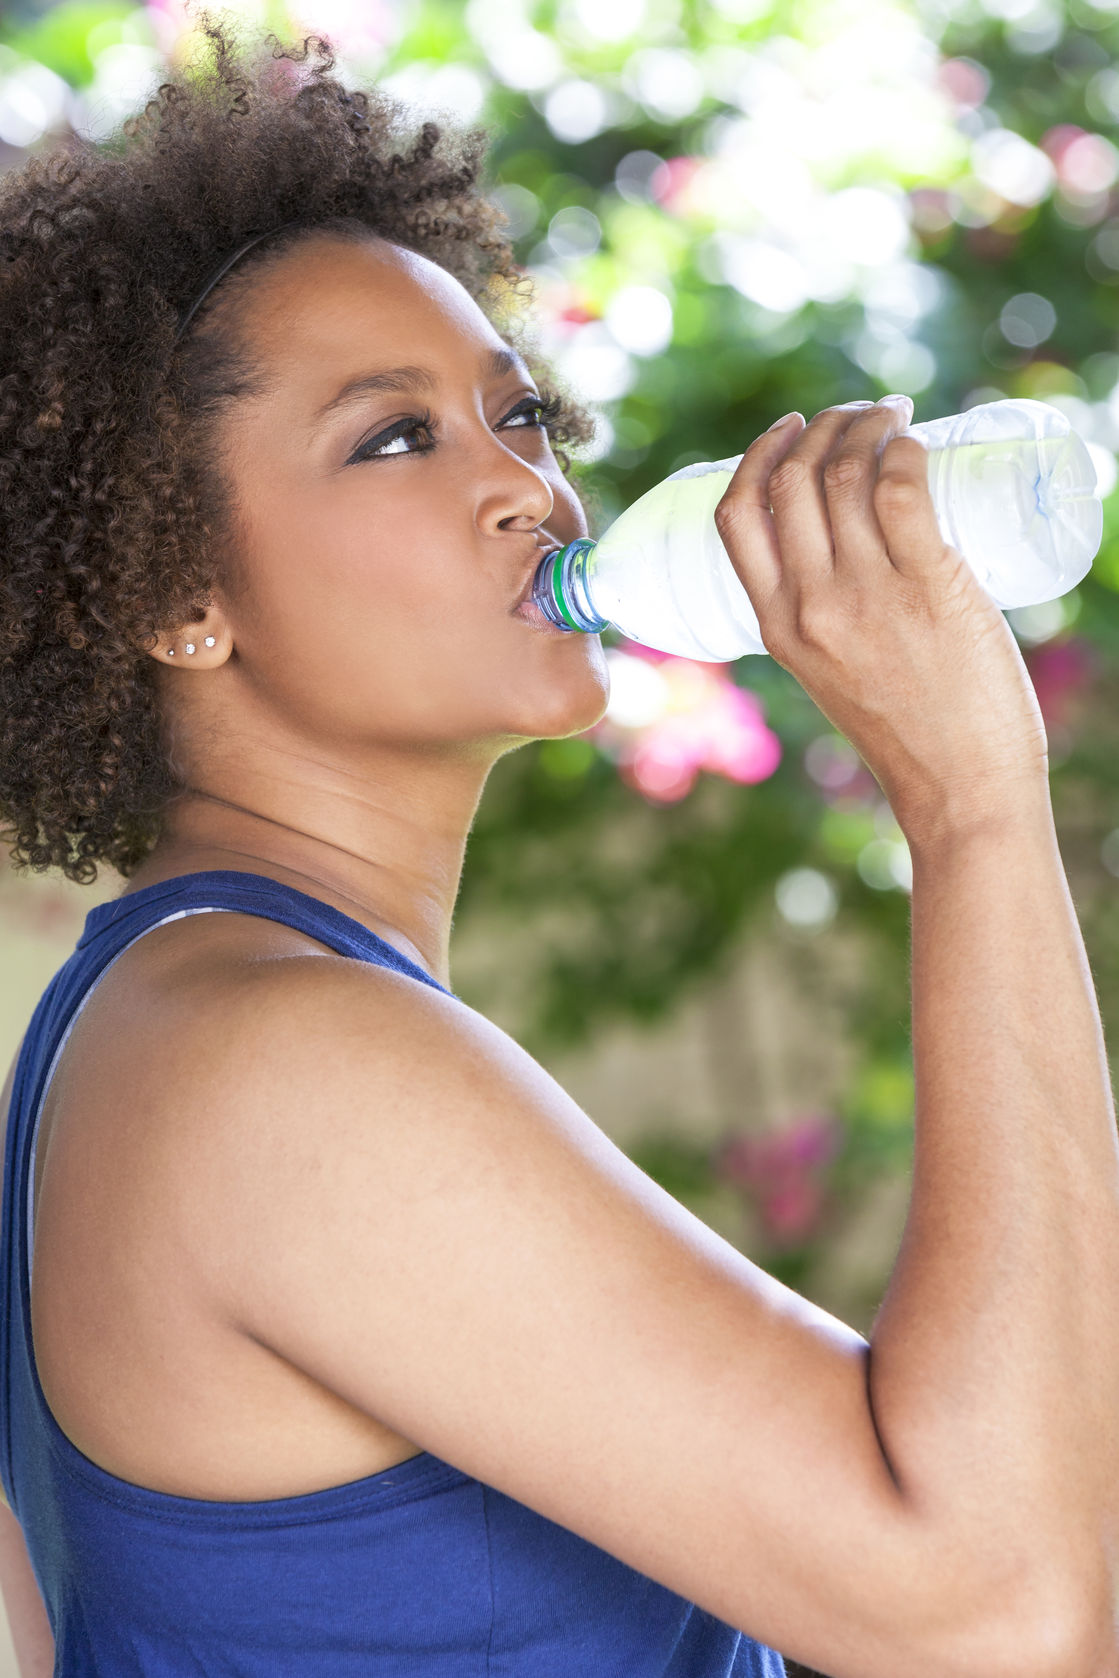 10 Steps To Detoxification.   Lady drinking water. https://www.wocdetox.com/body-detoxification.html